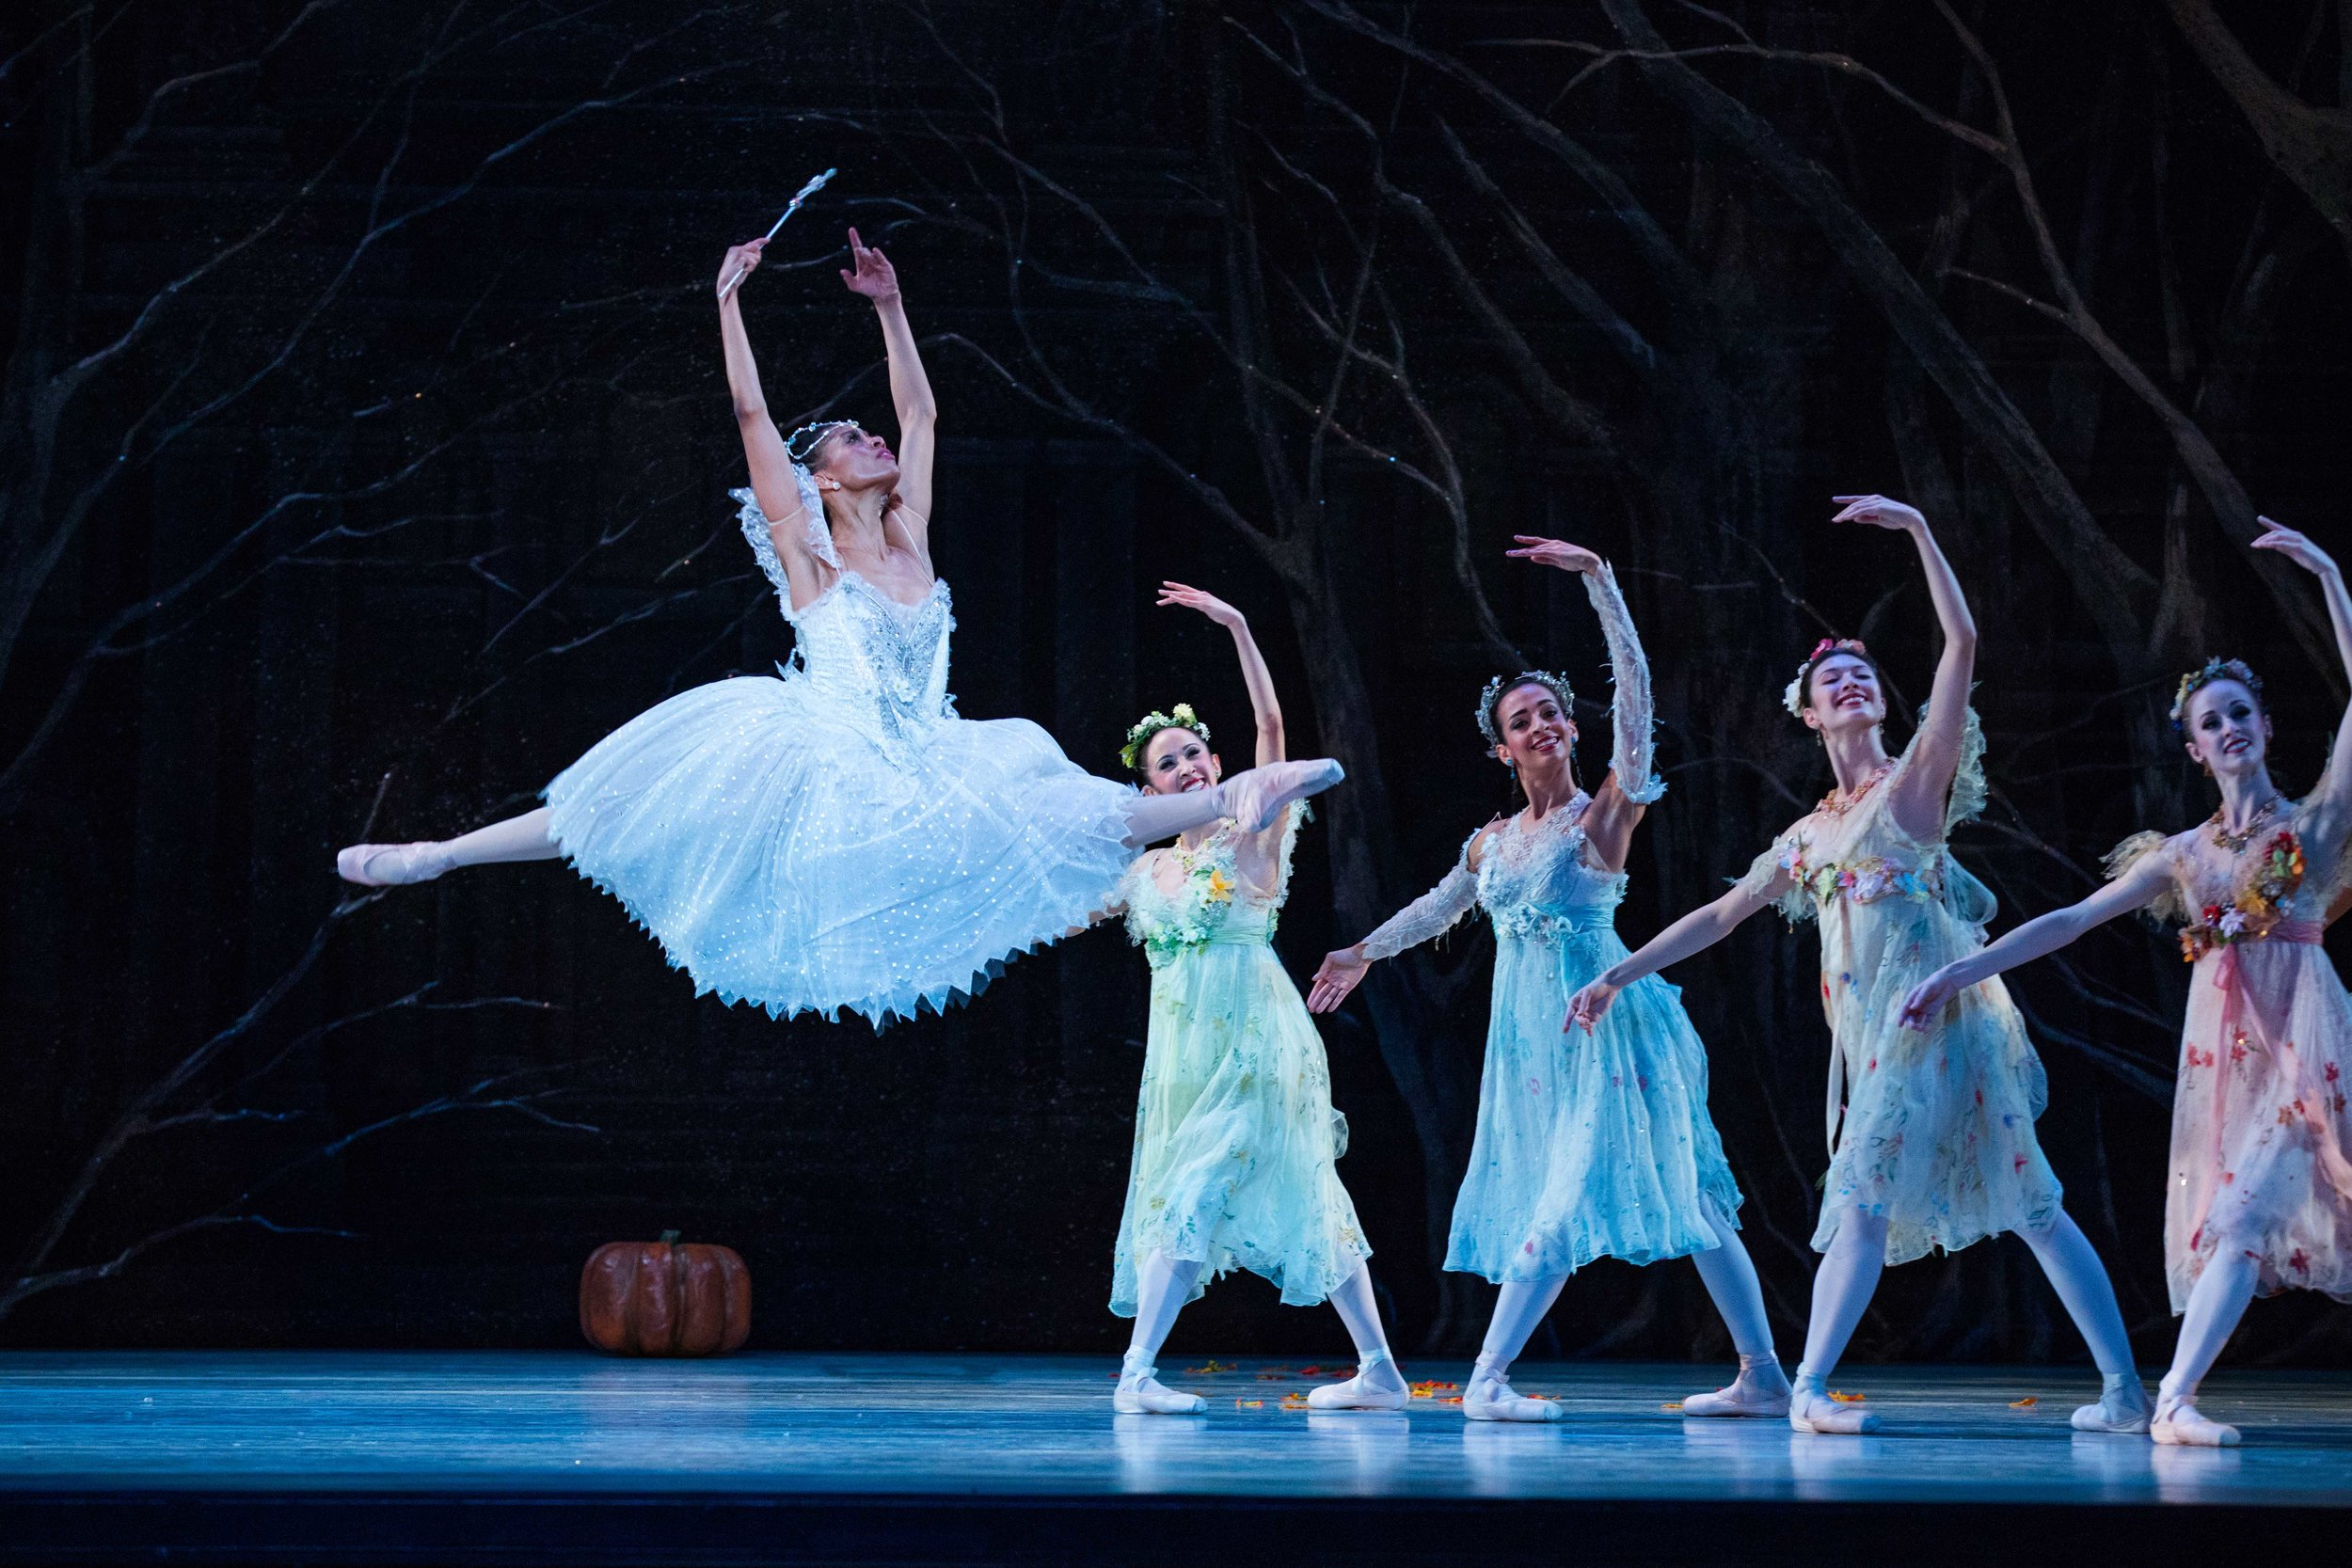 Soloist Katlyn Addison as the Fairy Godmother, with Artists of Ballet West as the Fairies of the Four Seasons. Photo by Beau Pearson.